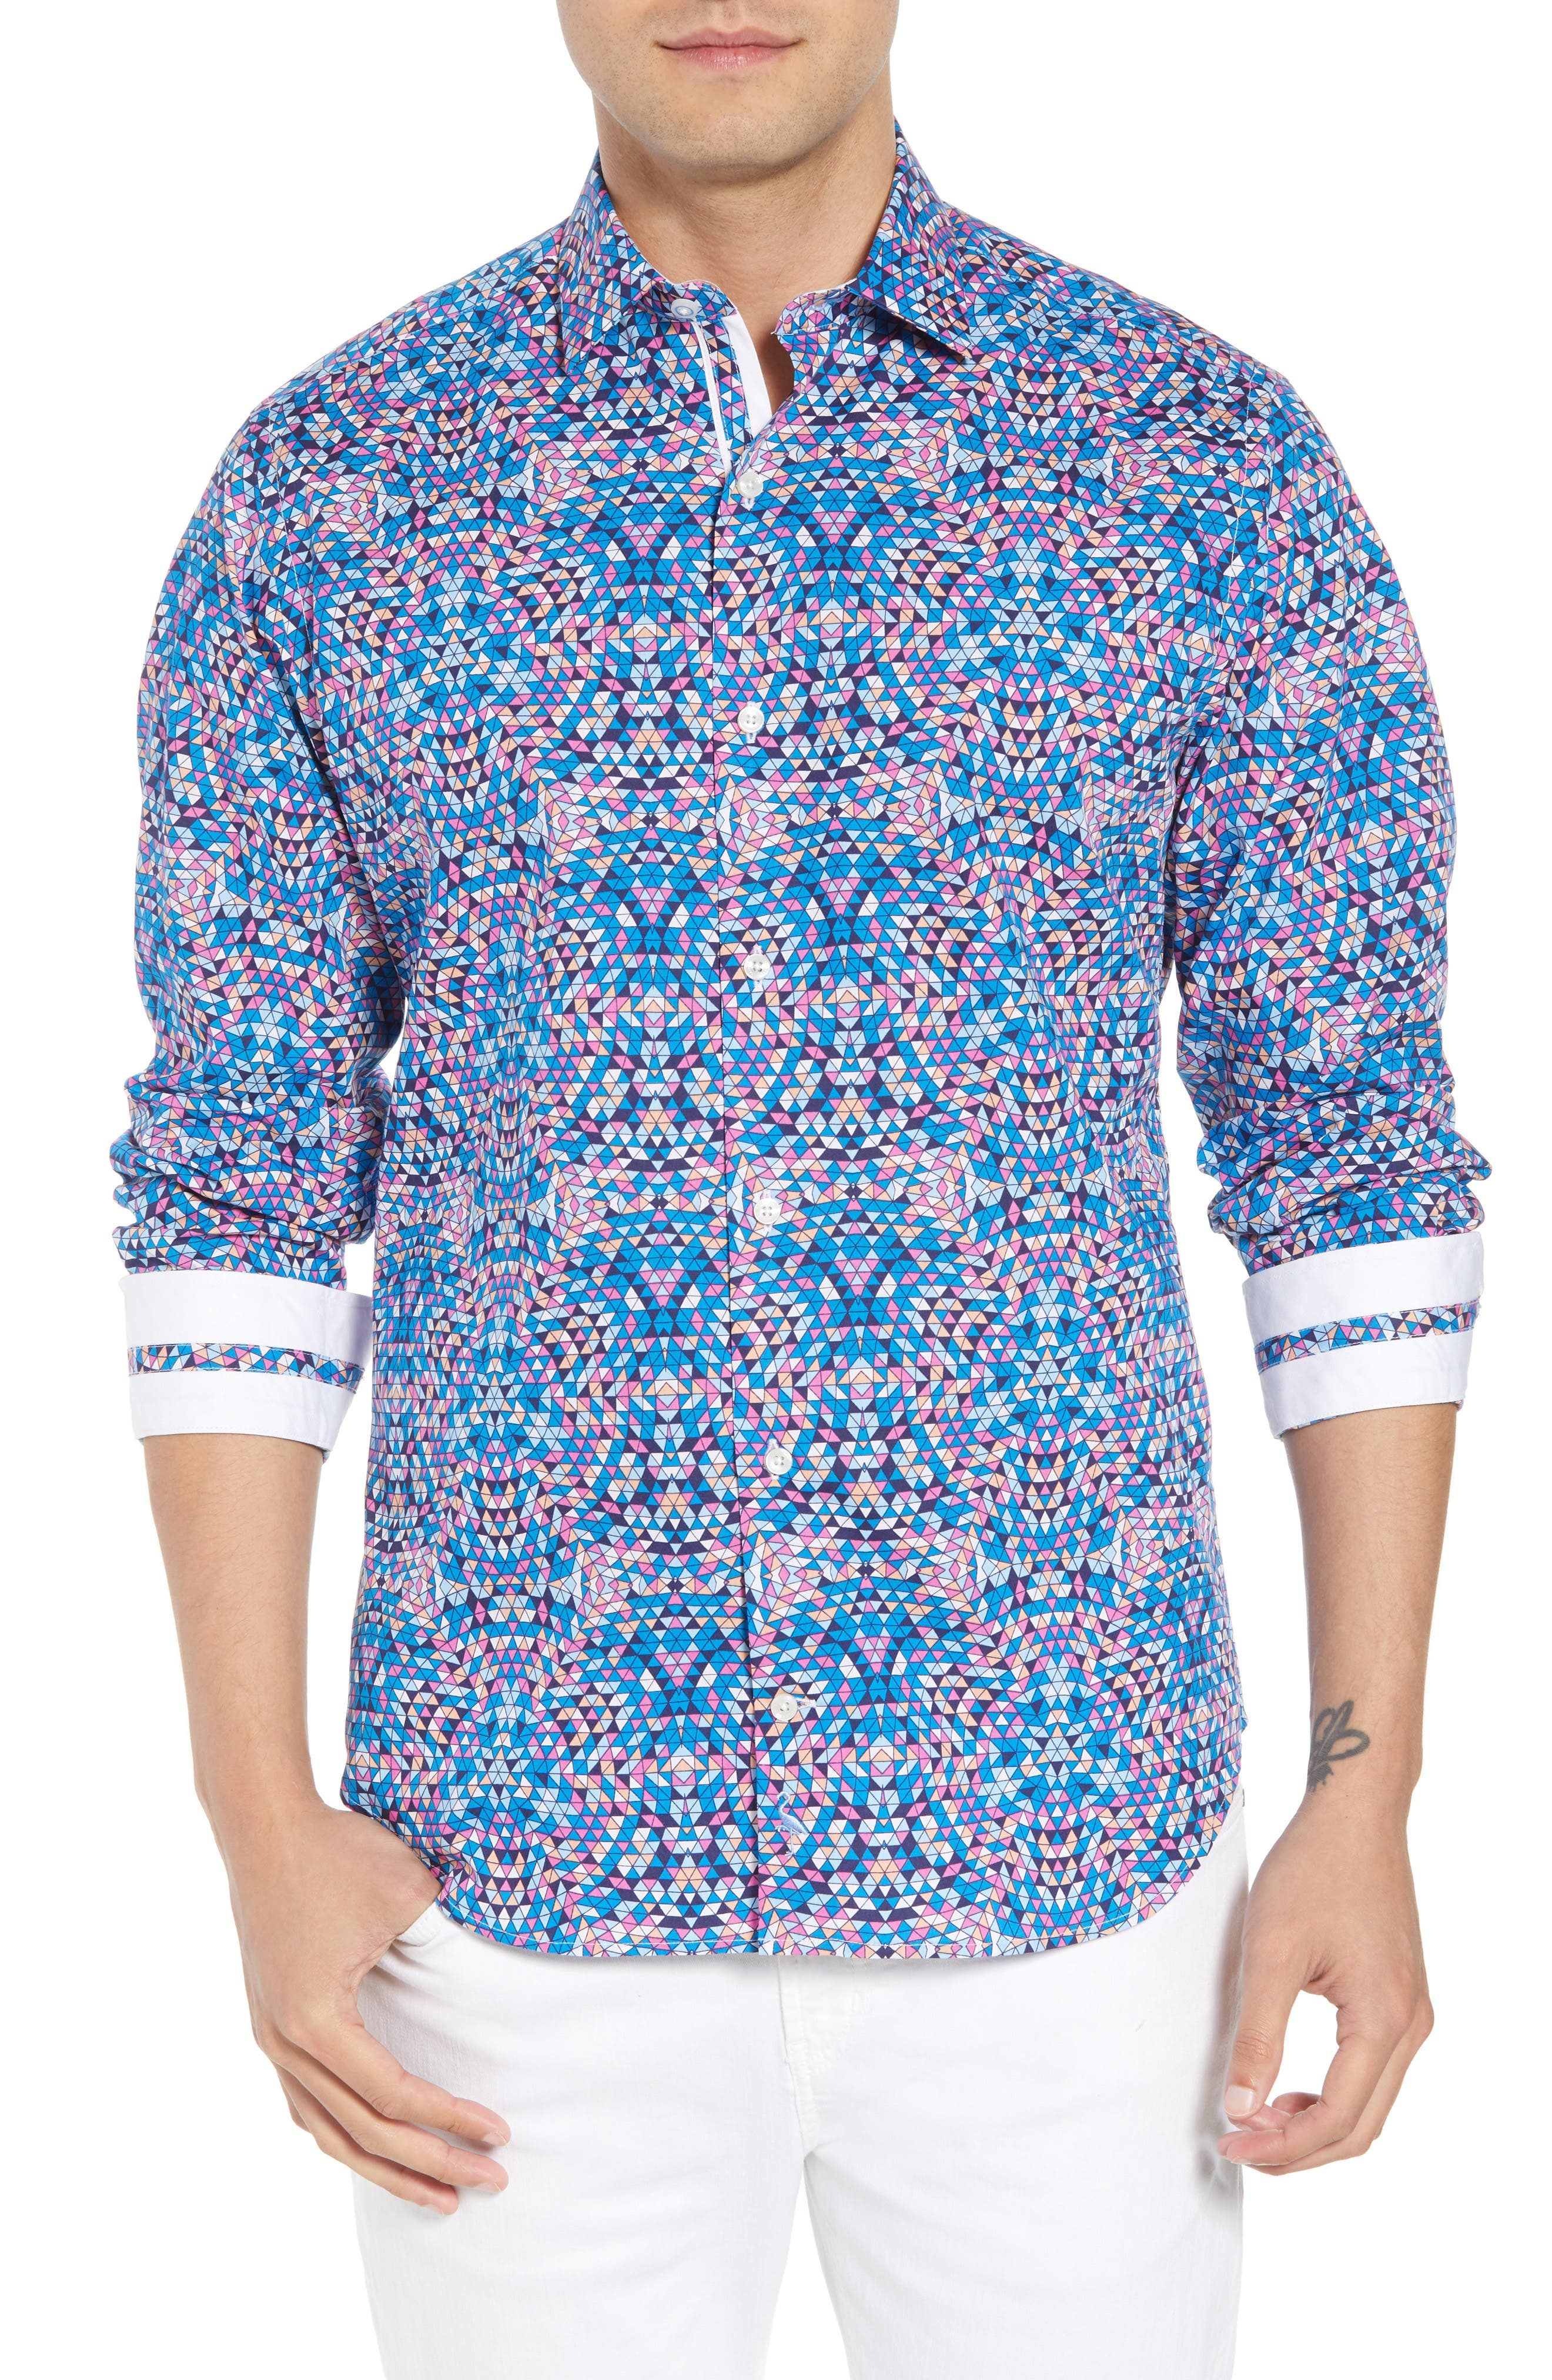 Alden Regular Fit Sport Shirt,                             Main thumbnail 1, color,